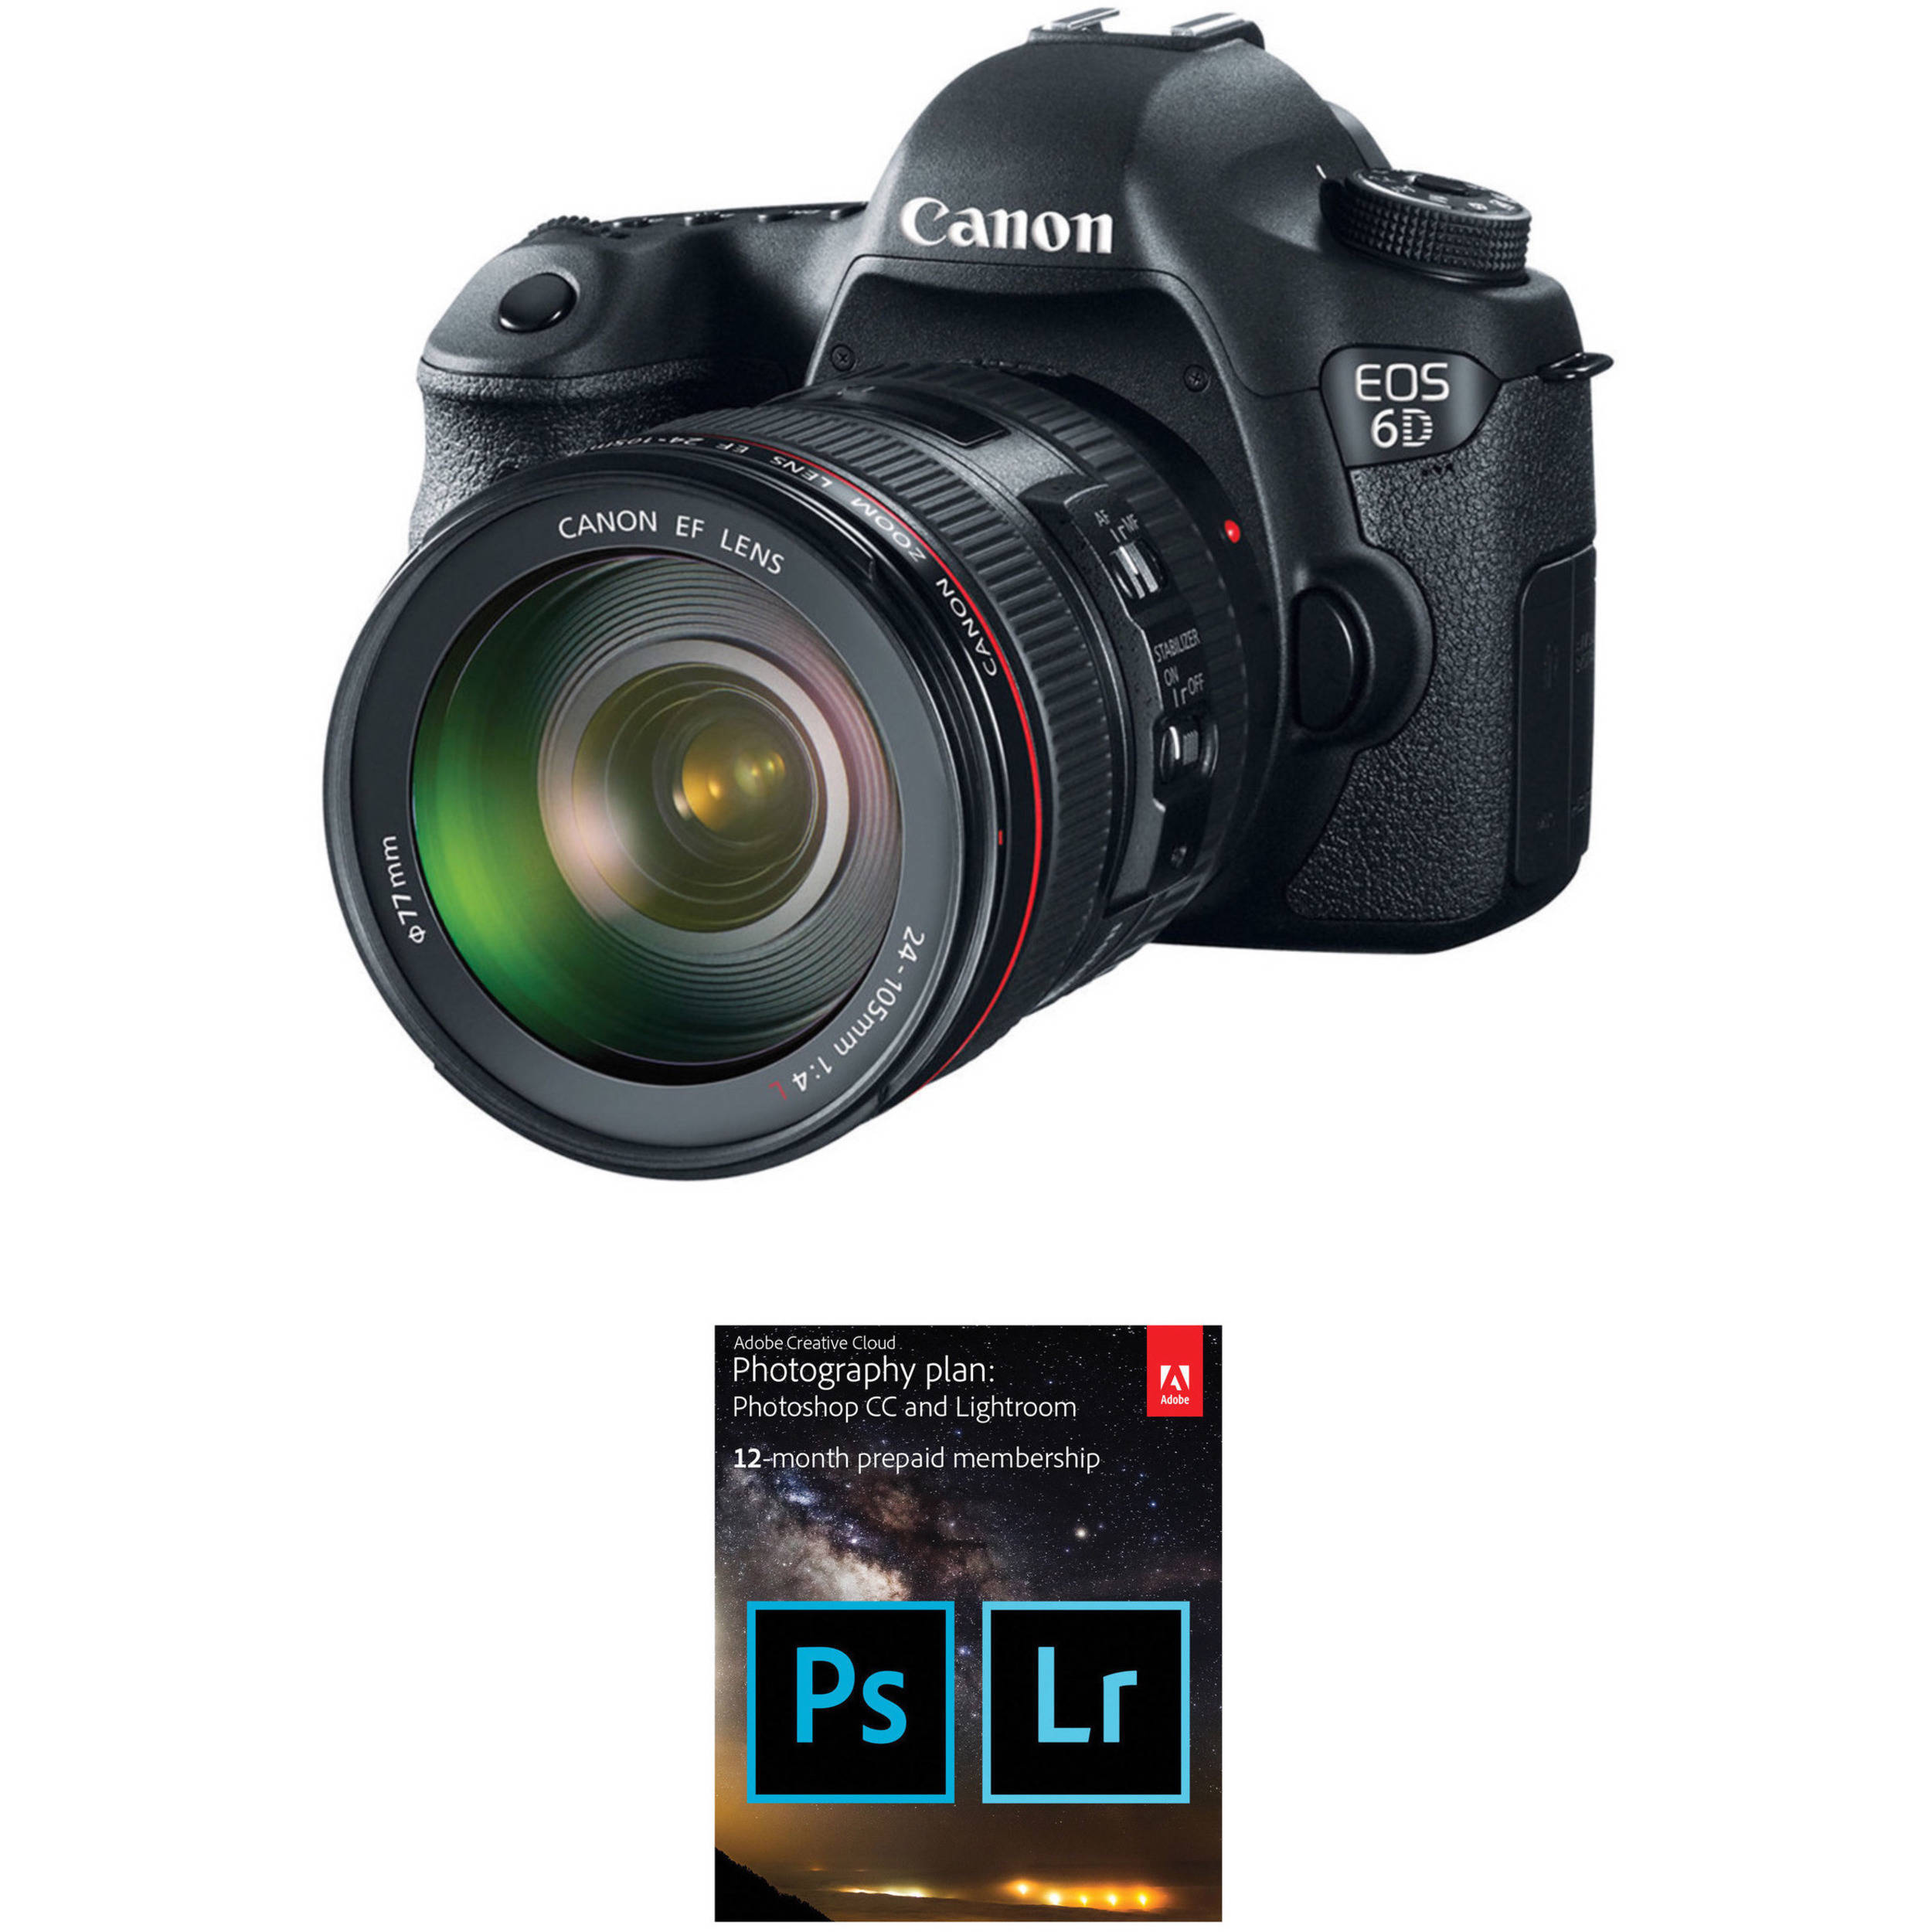 Canon EOS 6D DSLR Camera with 24-105mm f/4L Lens and Adobe B&H